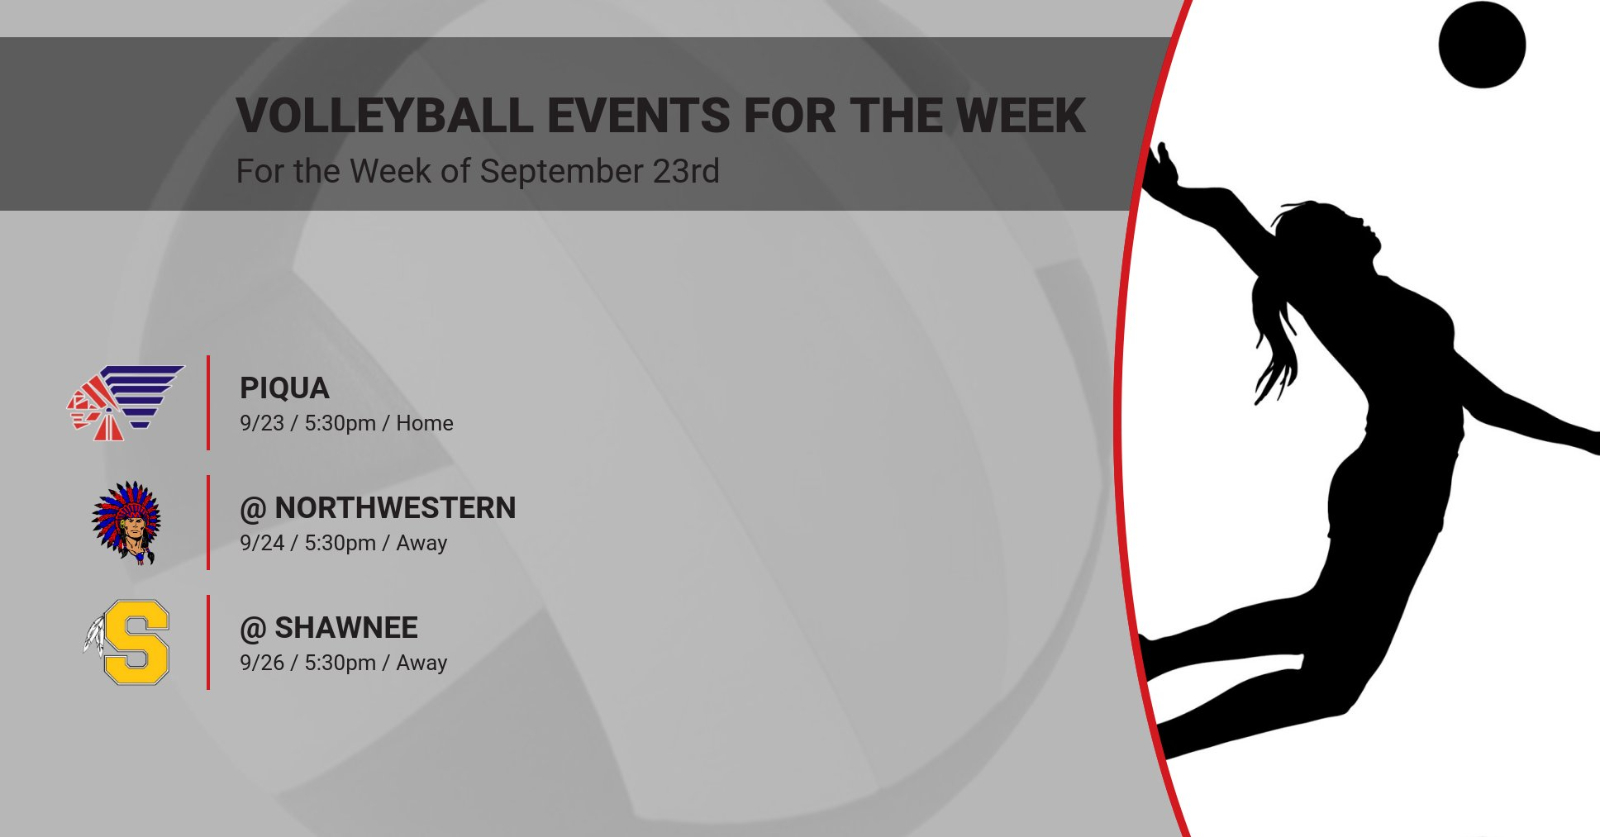 Volleyball Events for the Week of September 23rd